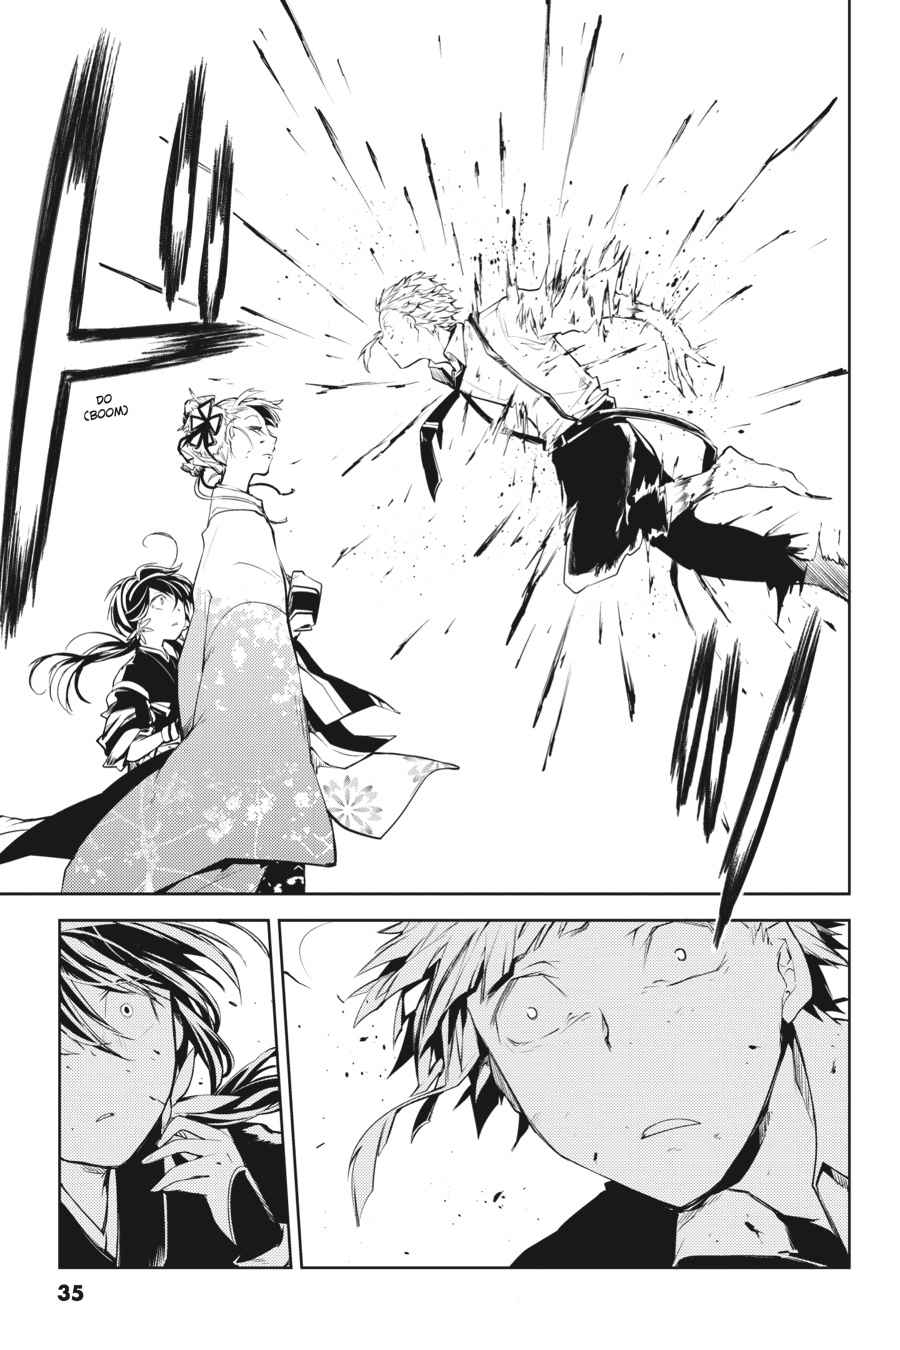 Bungou Stray Dogs Chapter 17 Page 35